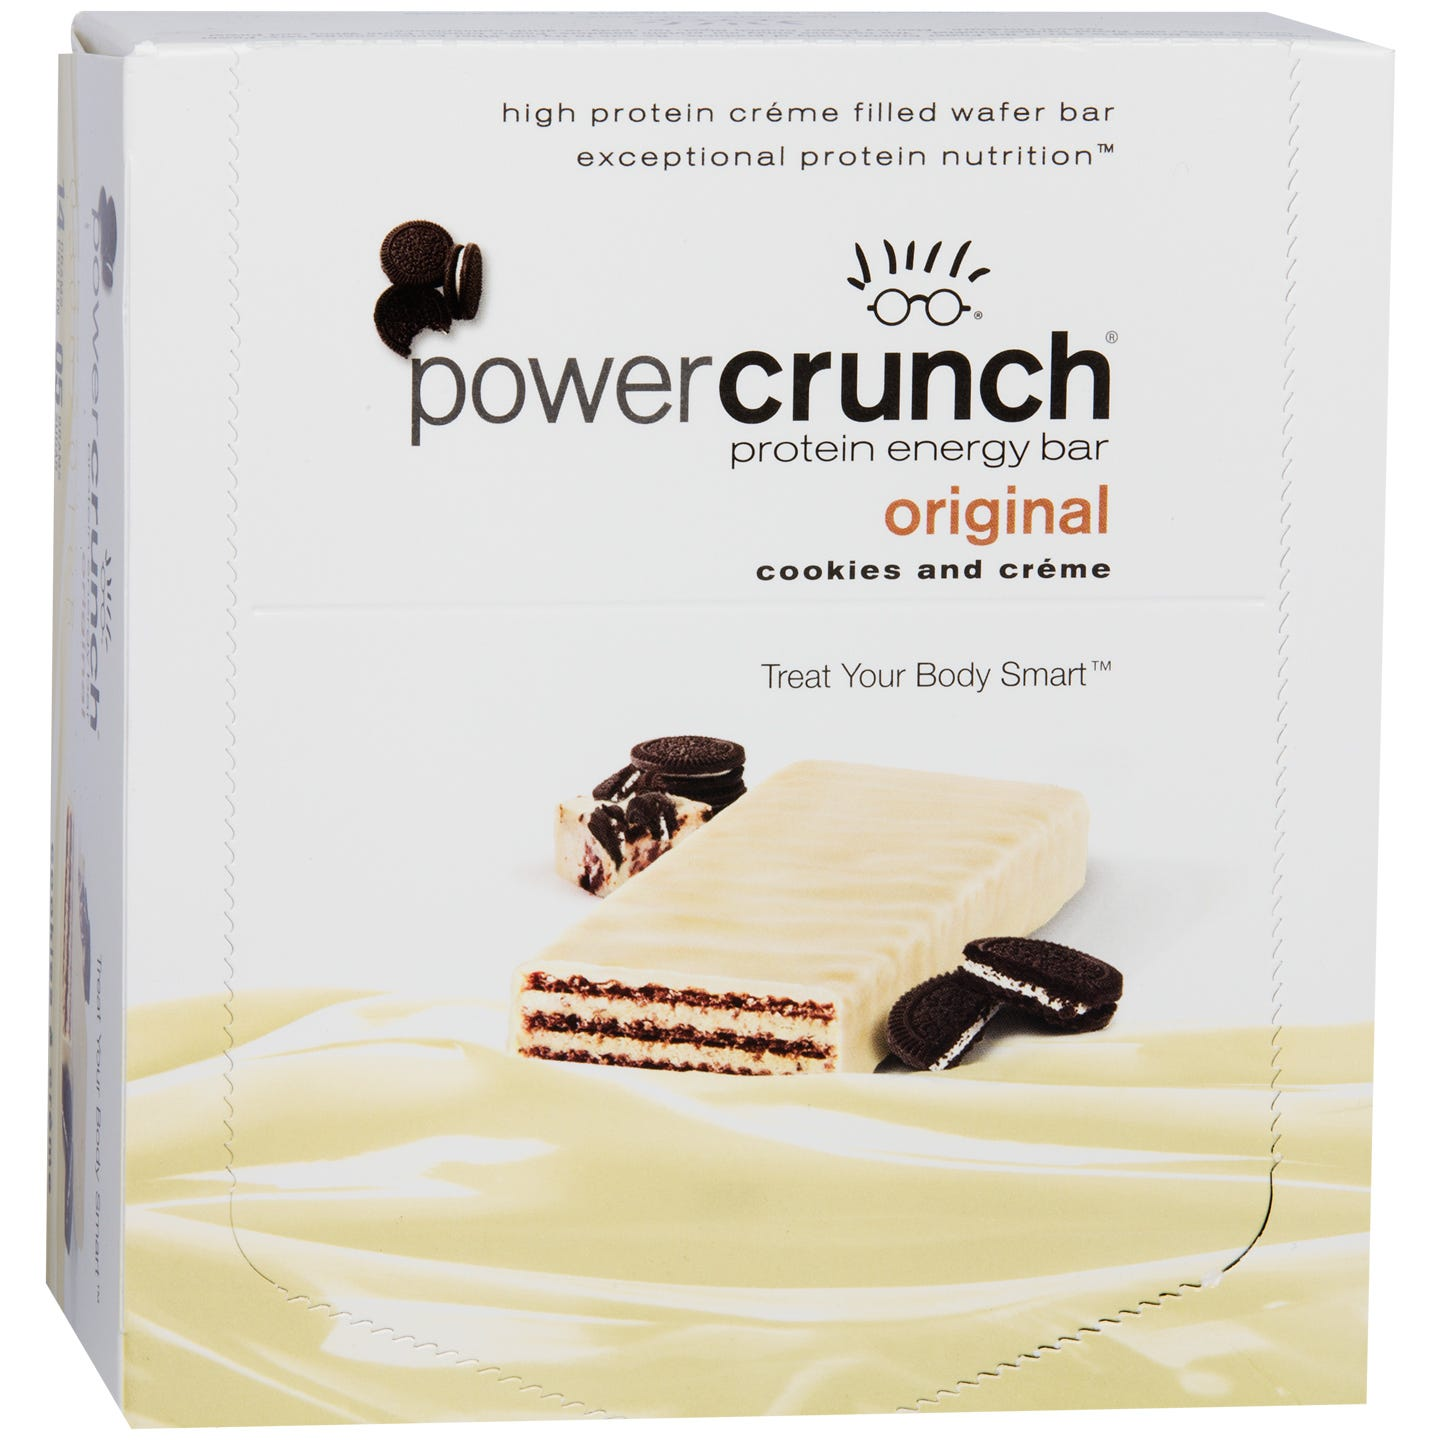 Protein Energy Bar Cookies & Creme (12 ct) - Power Crunch - Rapid Diet Weight Loss Products Shop